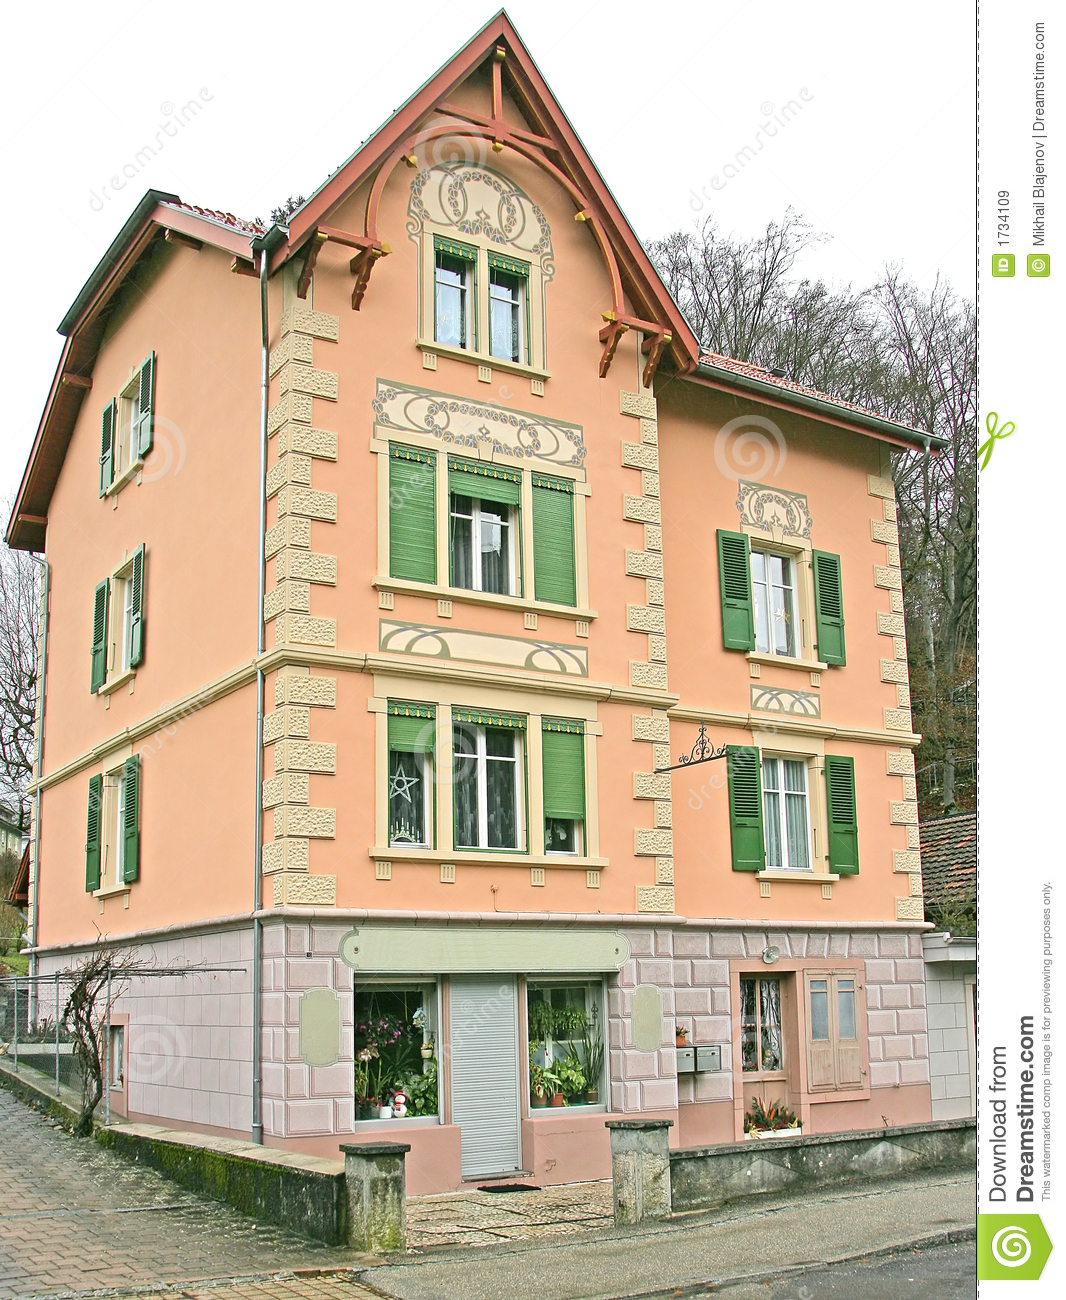 Nice village house 5 stock image image of swiss for Nice home photos